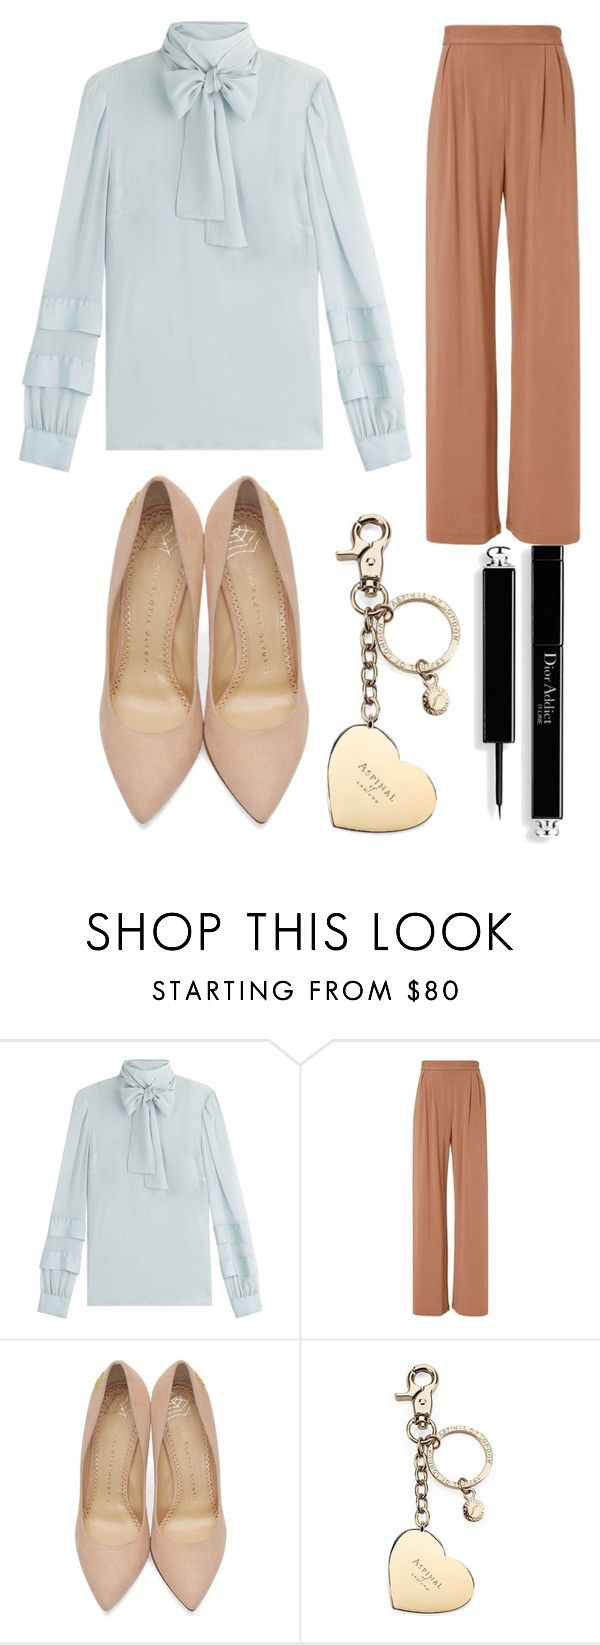 """Untitled #106"" by connorkenway2016 ❤ liked on Polyvore featuring RED Valentino, Fleur du Mal, Charlotte Olympia and Aspinal of London"